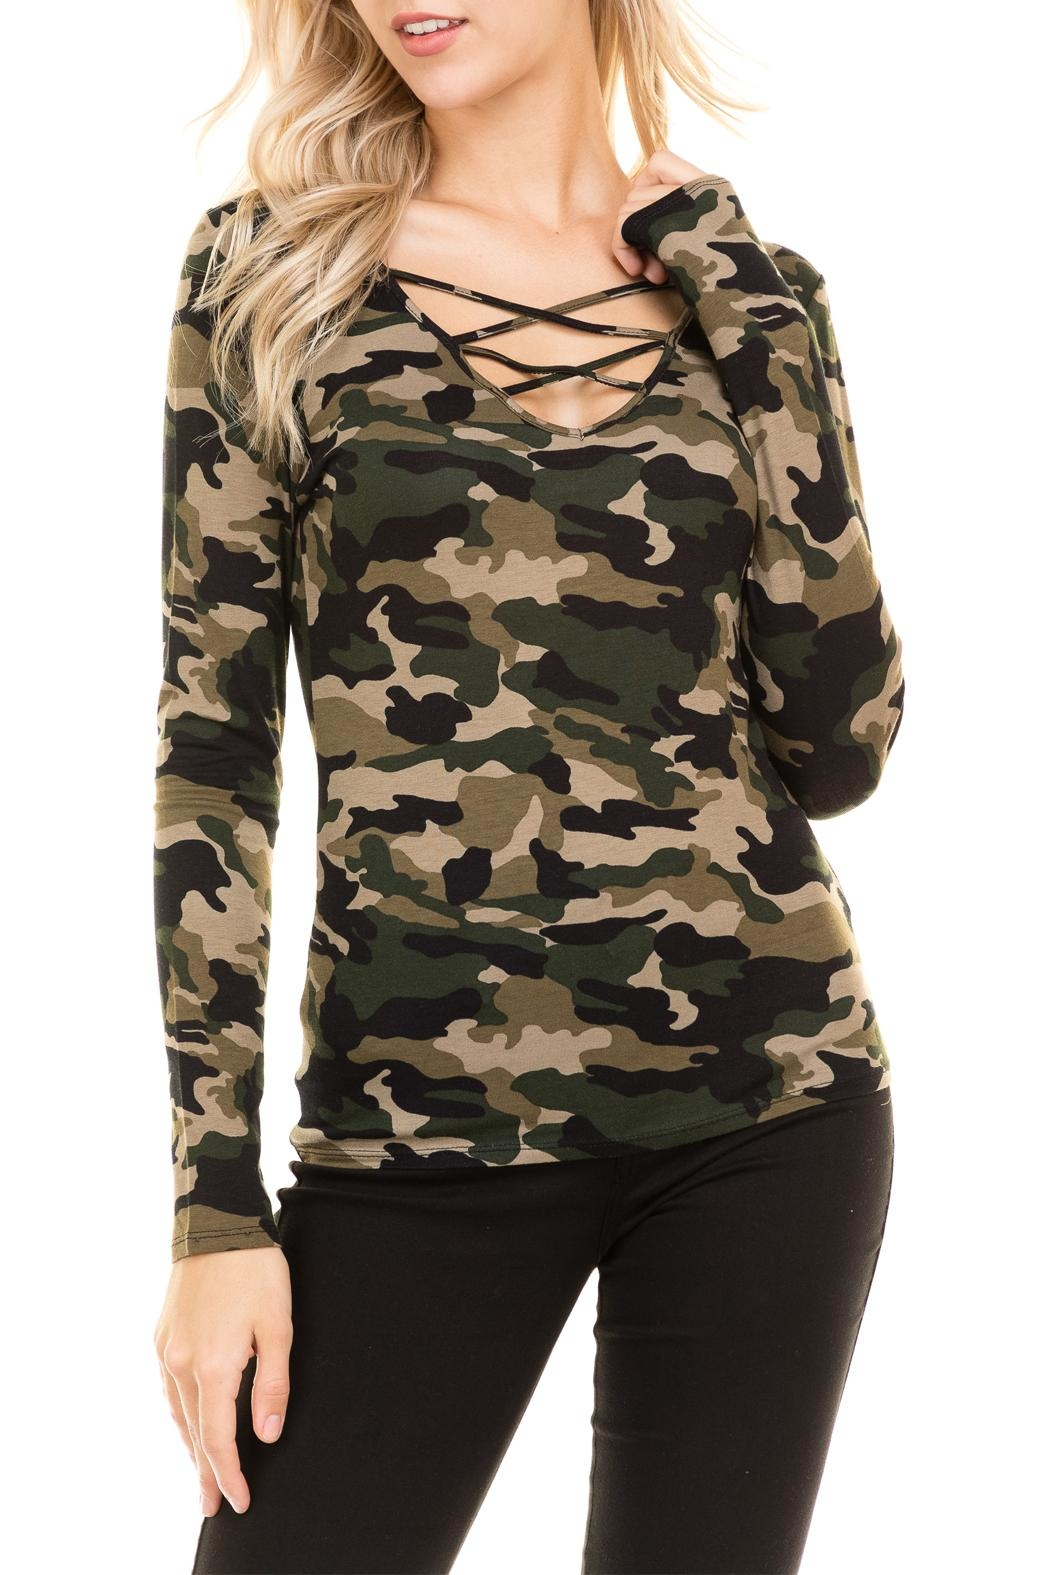 Heart and Hips CrissCross Camouflage Top - Front Full Image